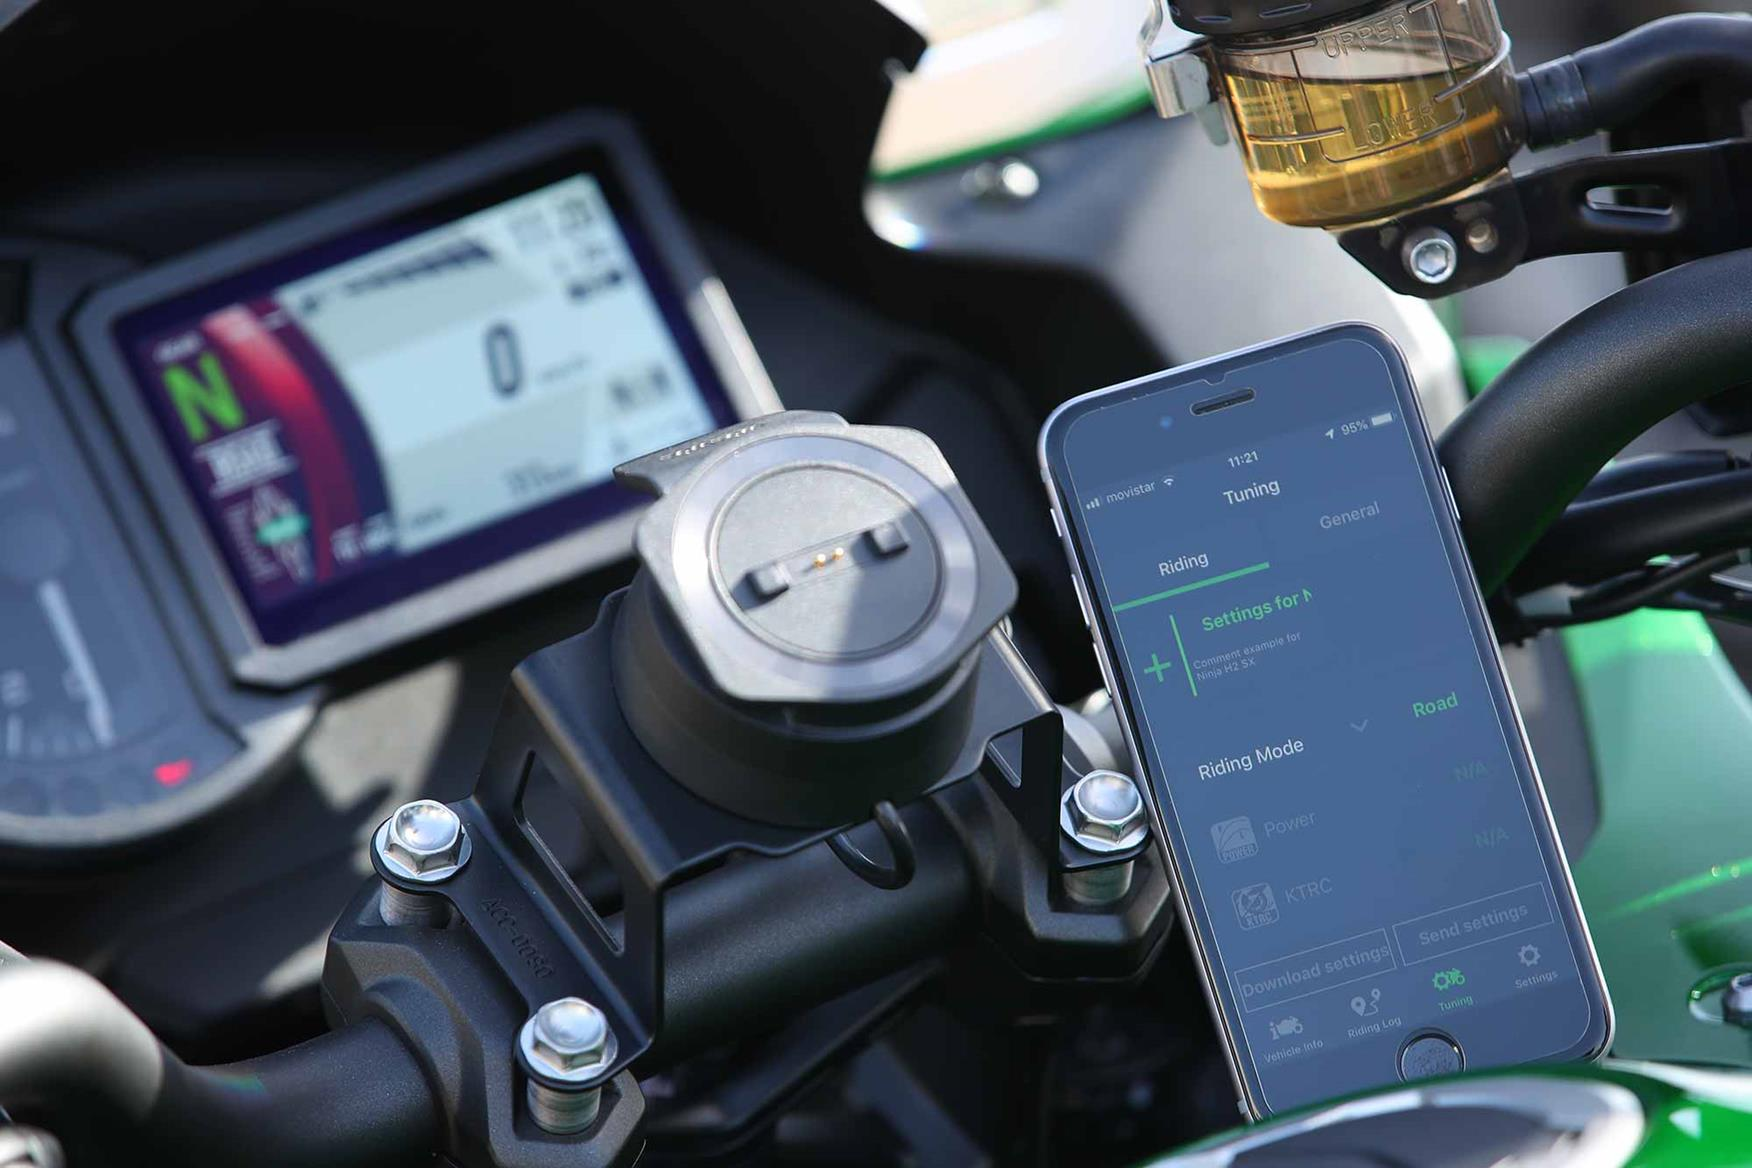 The bike can be adjusted with a 'Rideology' app